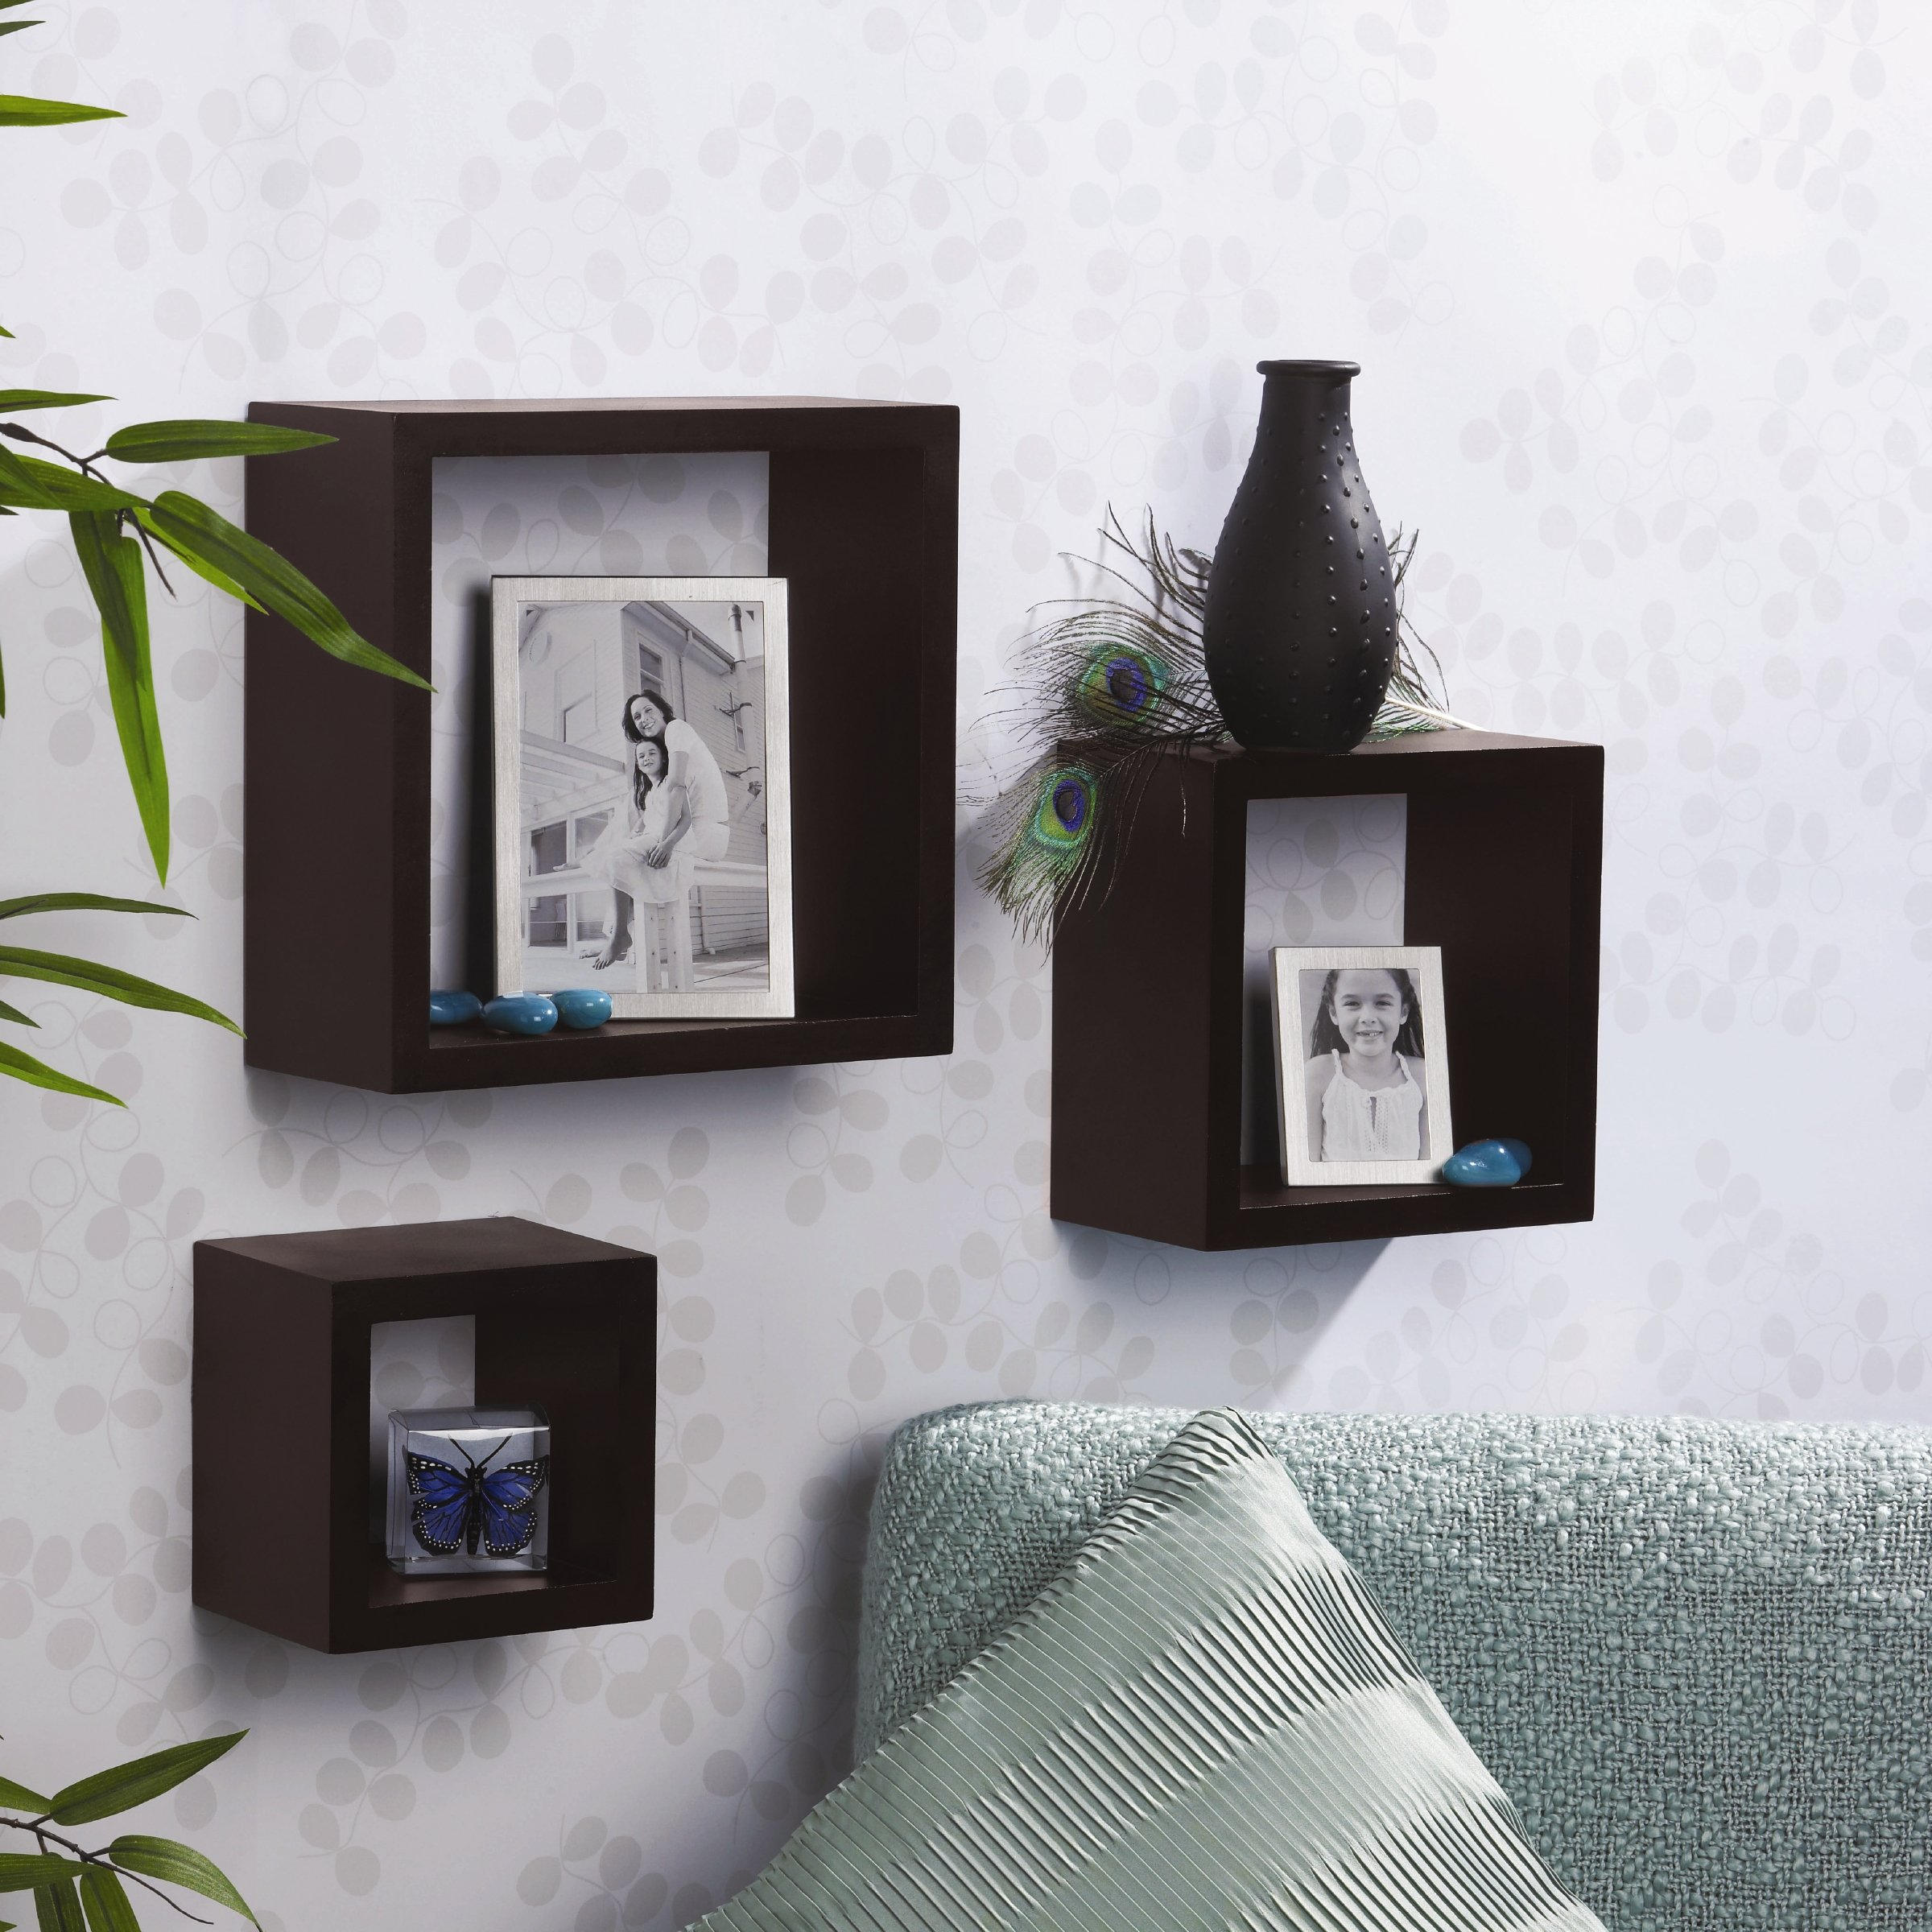 Cube shelf 3 wood square wall mount display shelving home cube shelf 3 wood square wall mount display shelving home organizer decor walnut fast free shipping amipublicfo Image collections